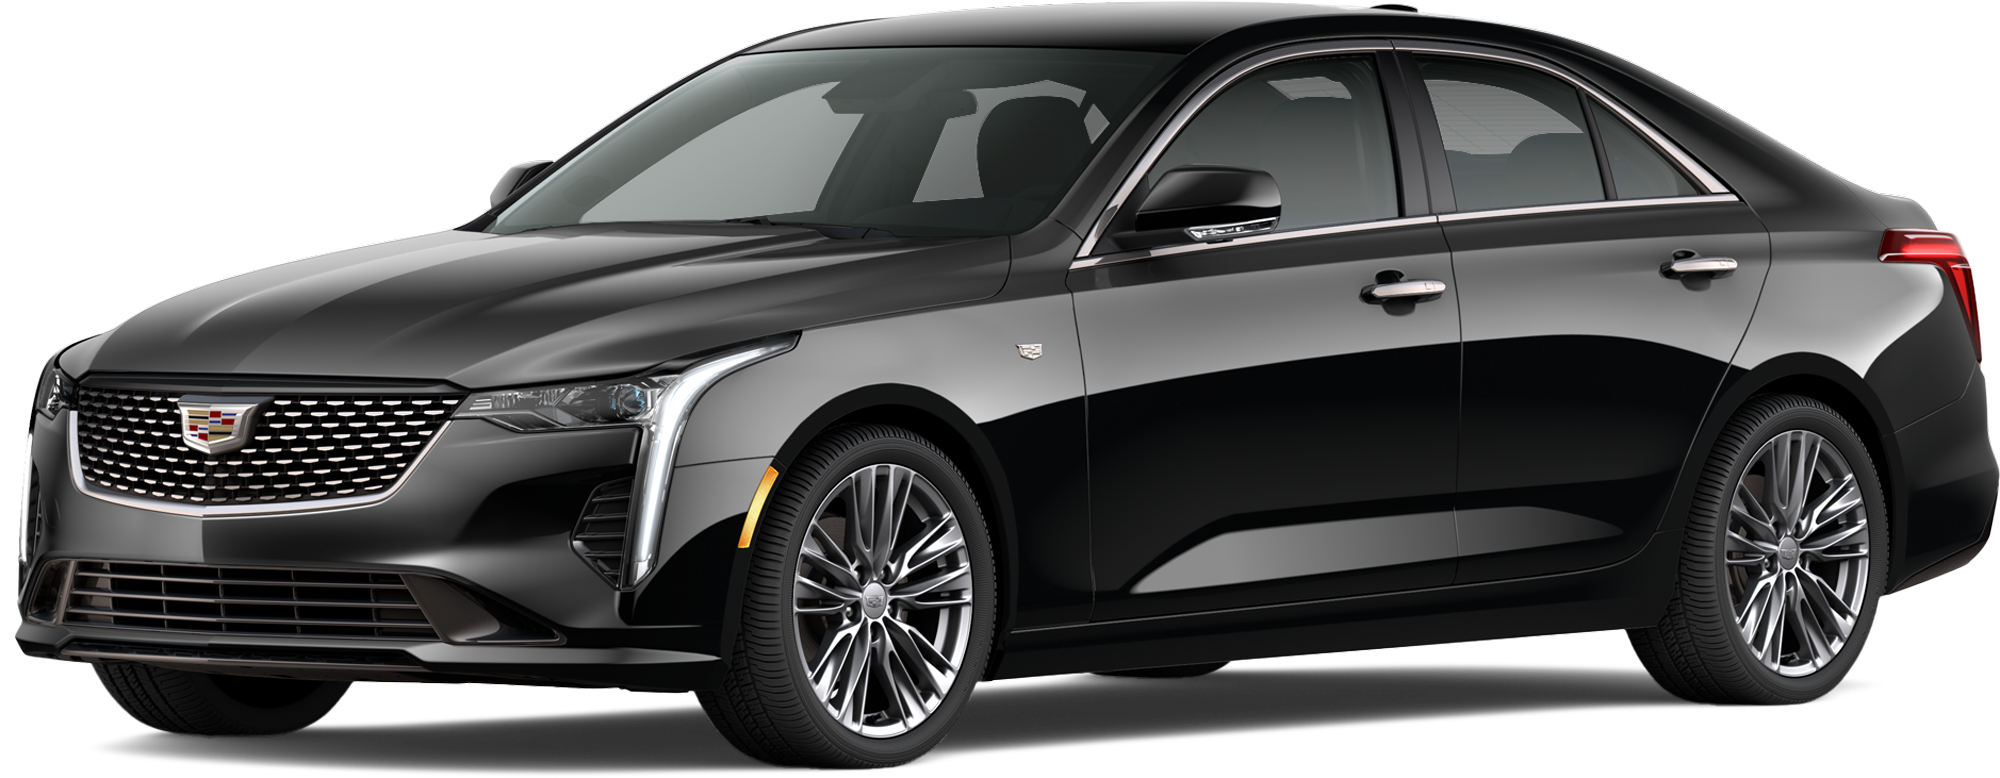 2021 CADILLAC CT4 Sedan Premium Luxury